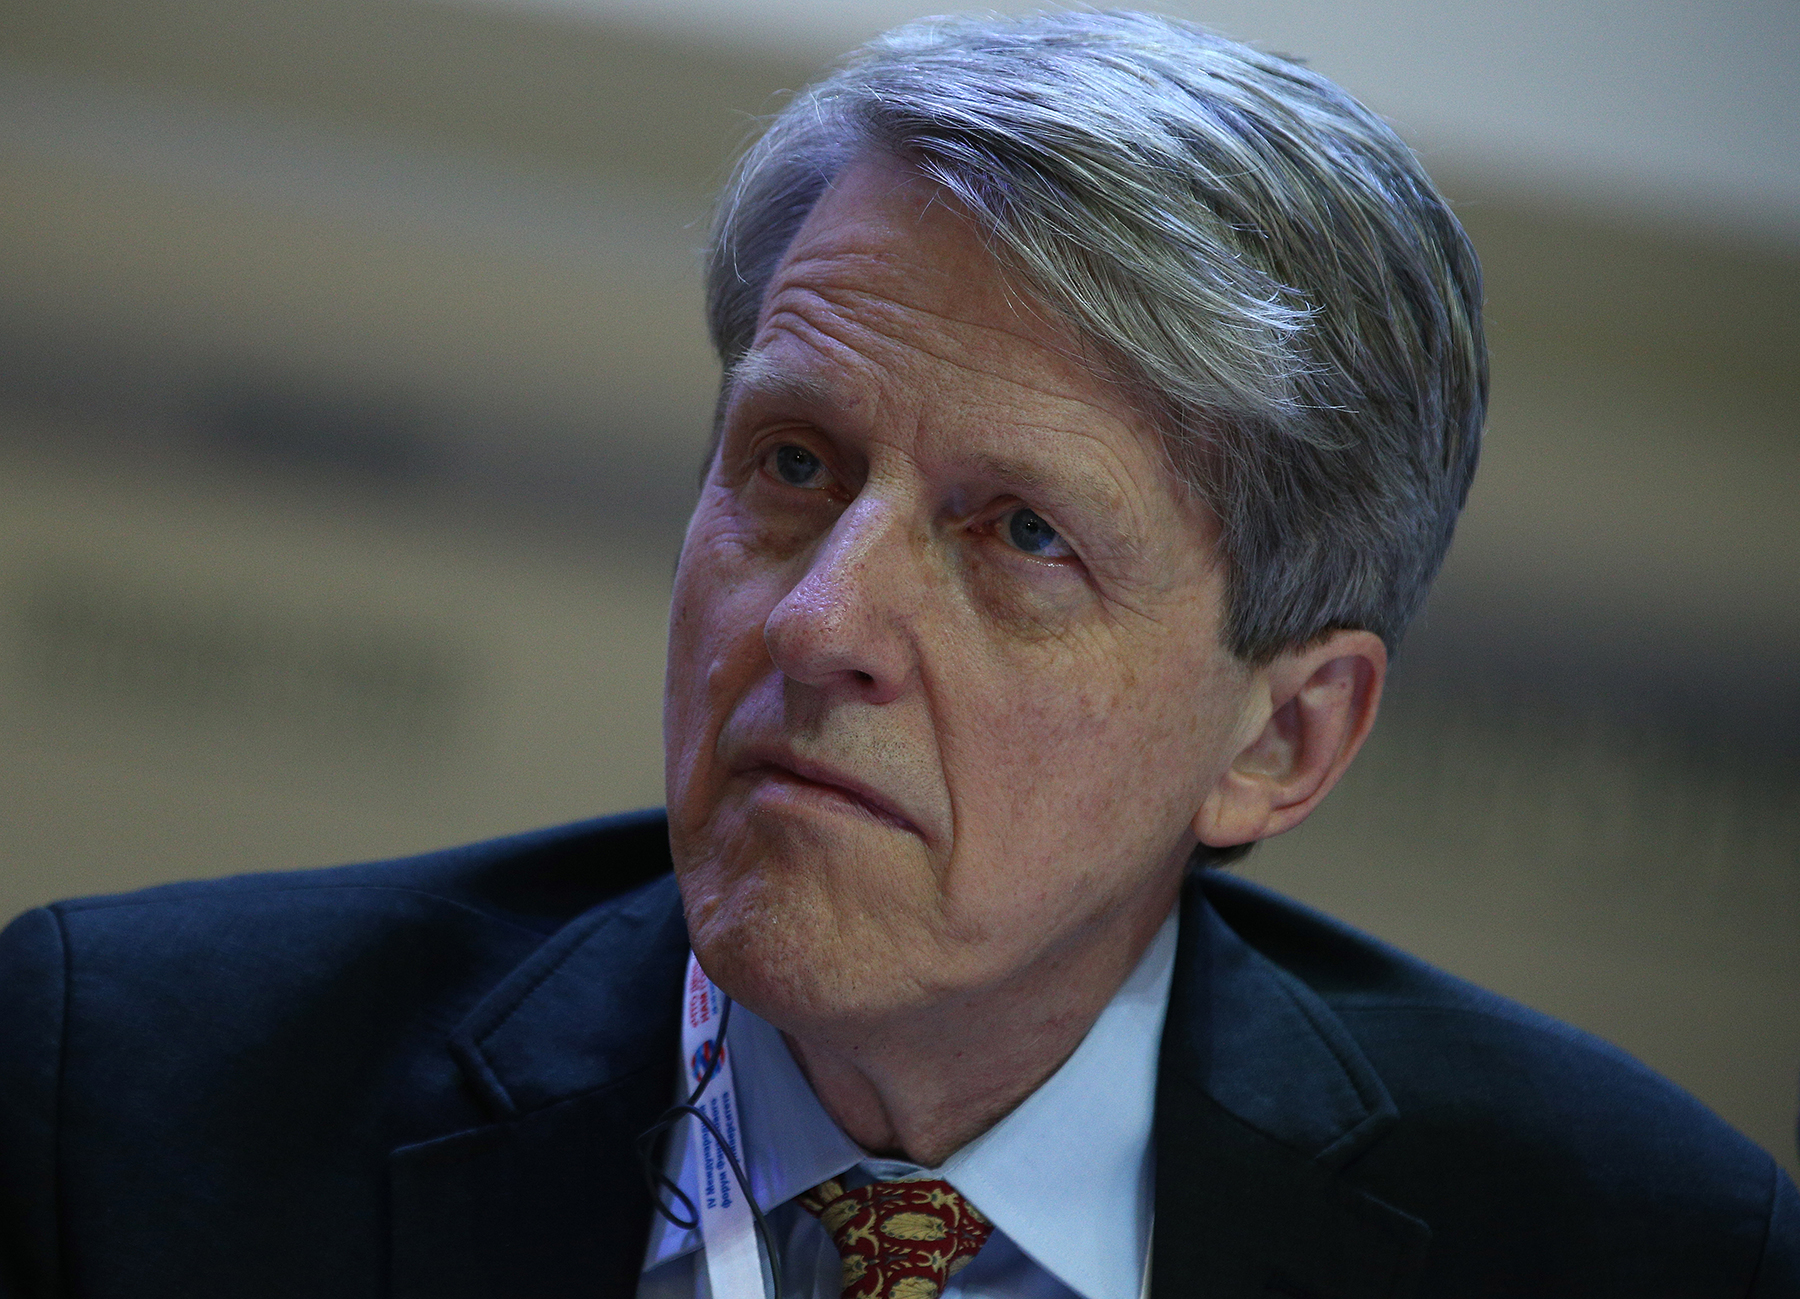 Nobel Prize winner in economics Robert J. Shiller